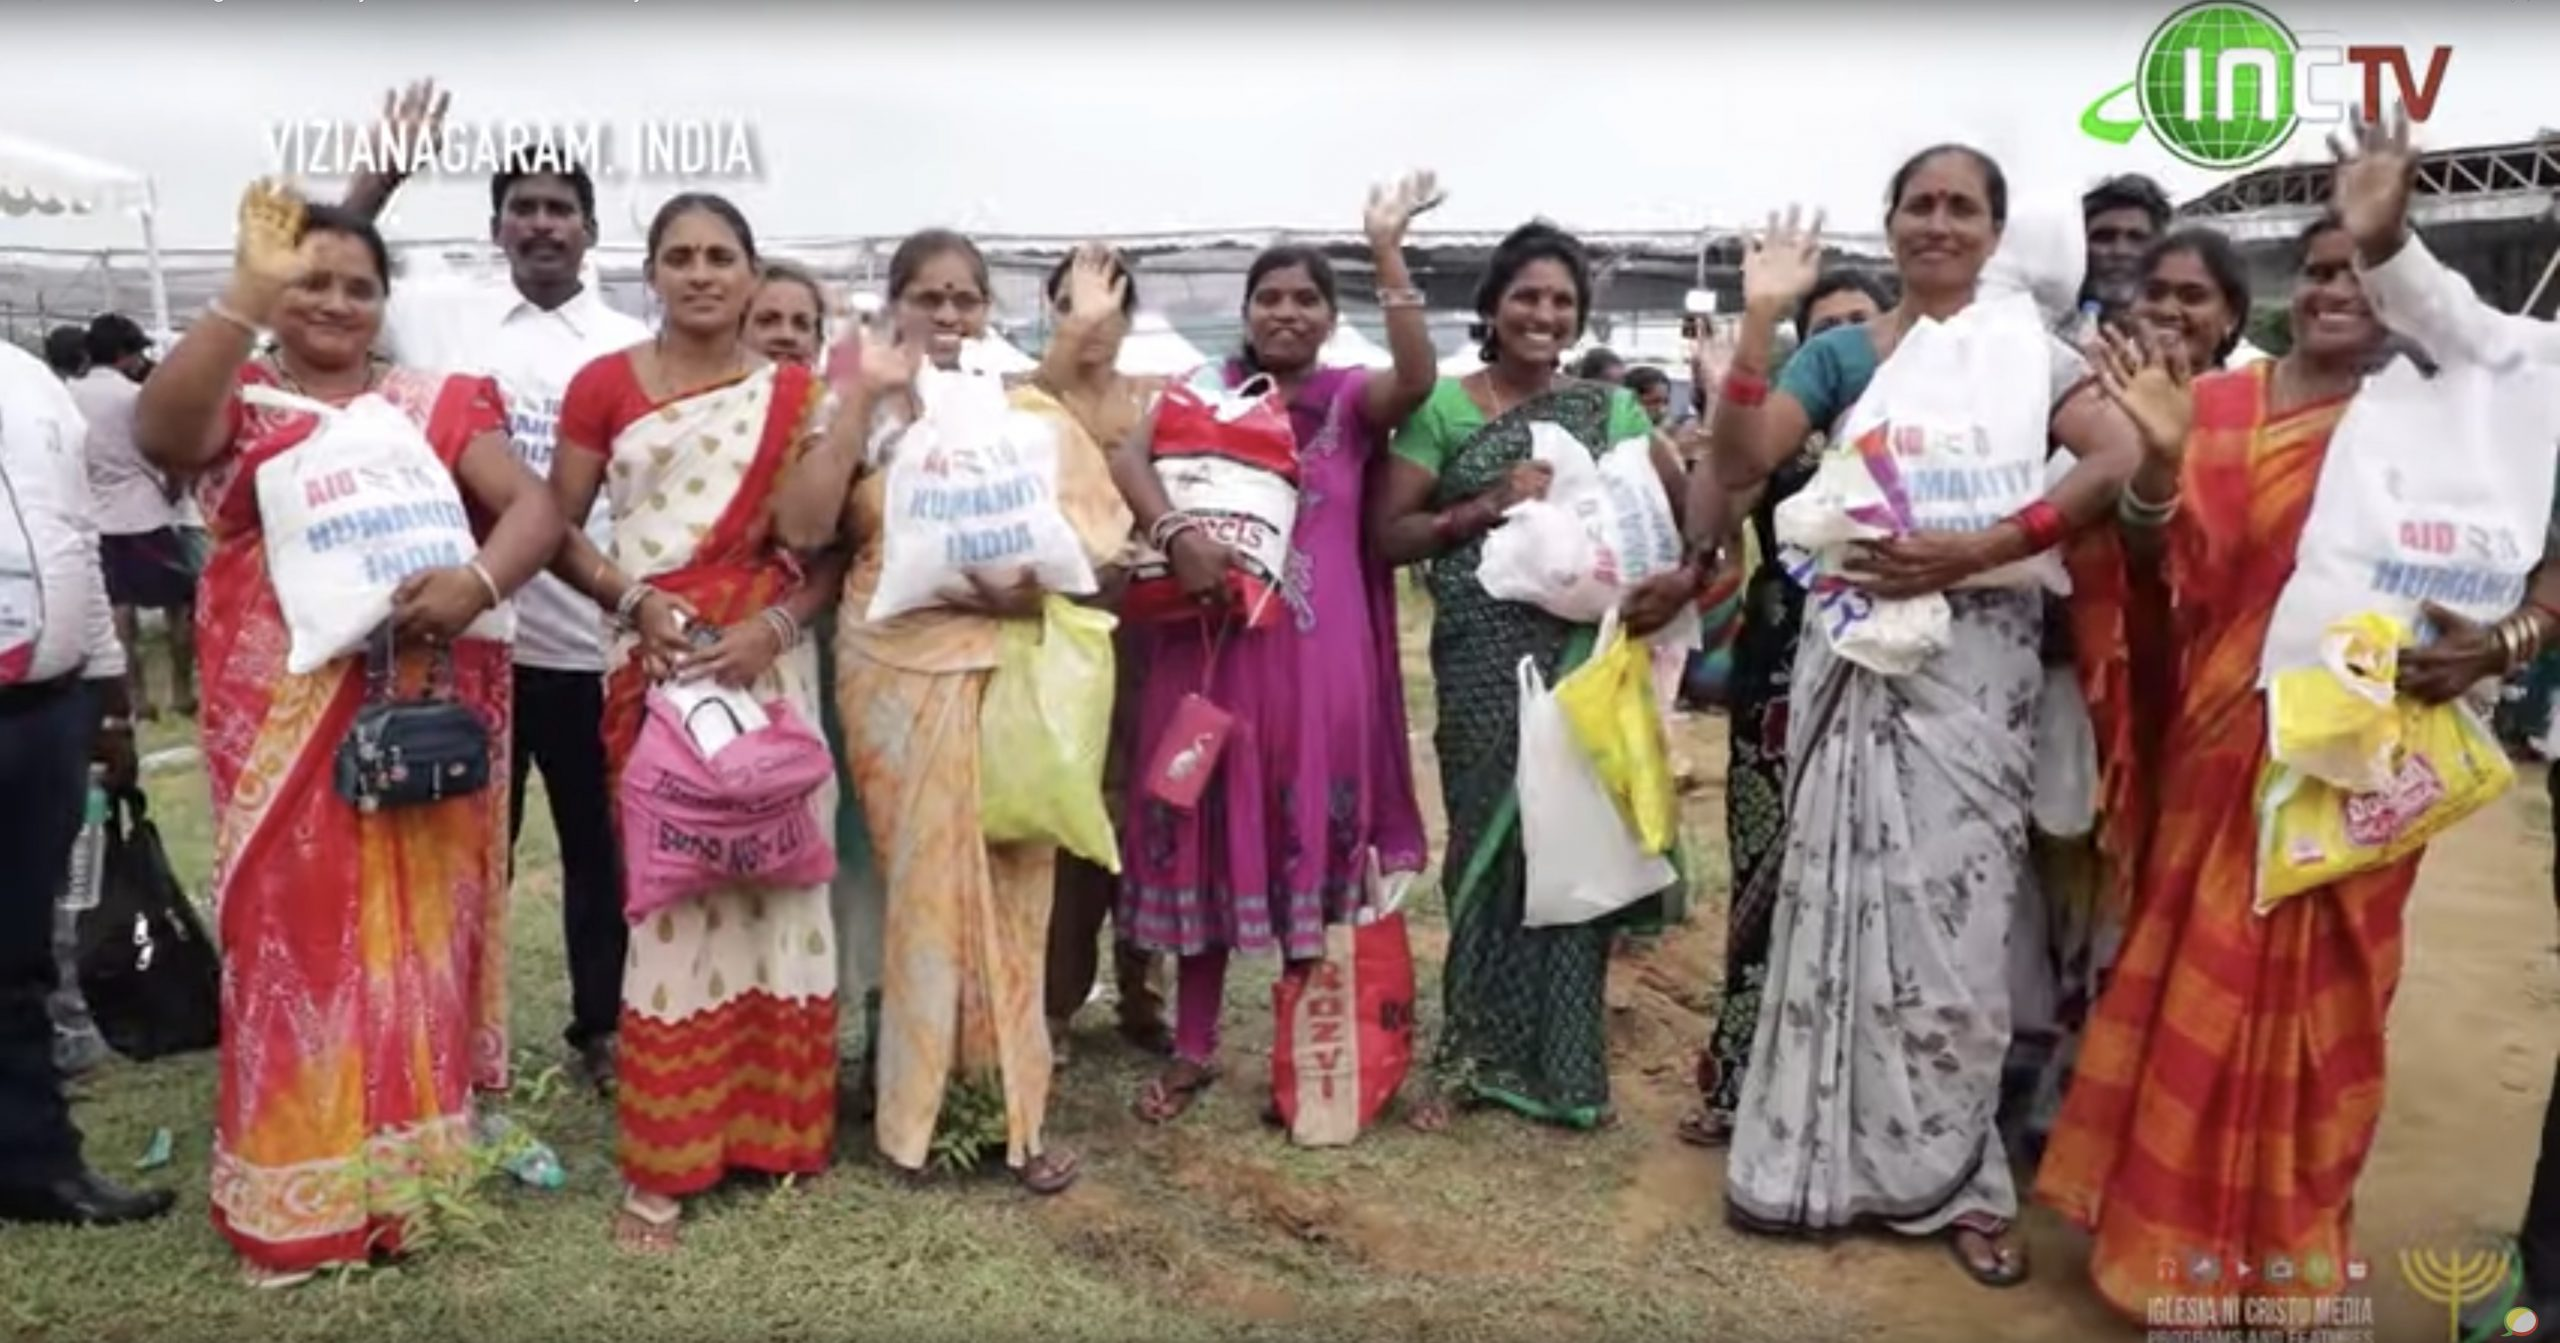 25,000 Care Packages Given; Day Three of Aid to Humanity in India